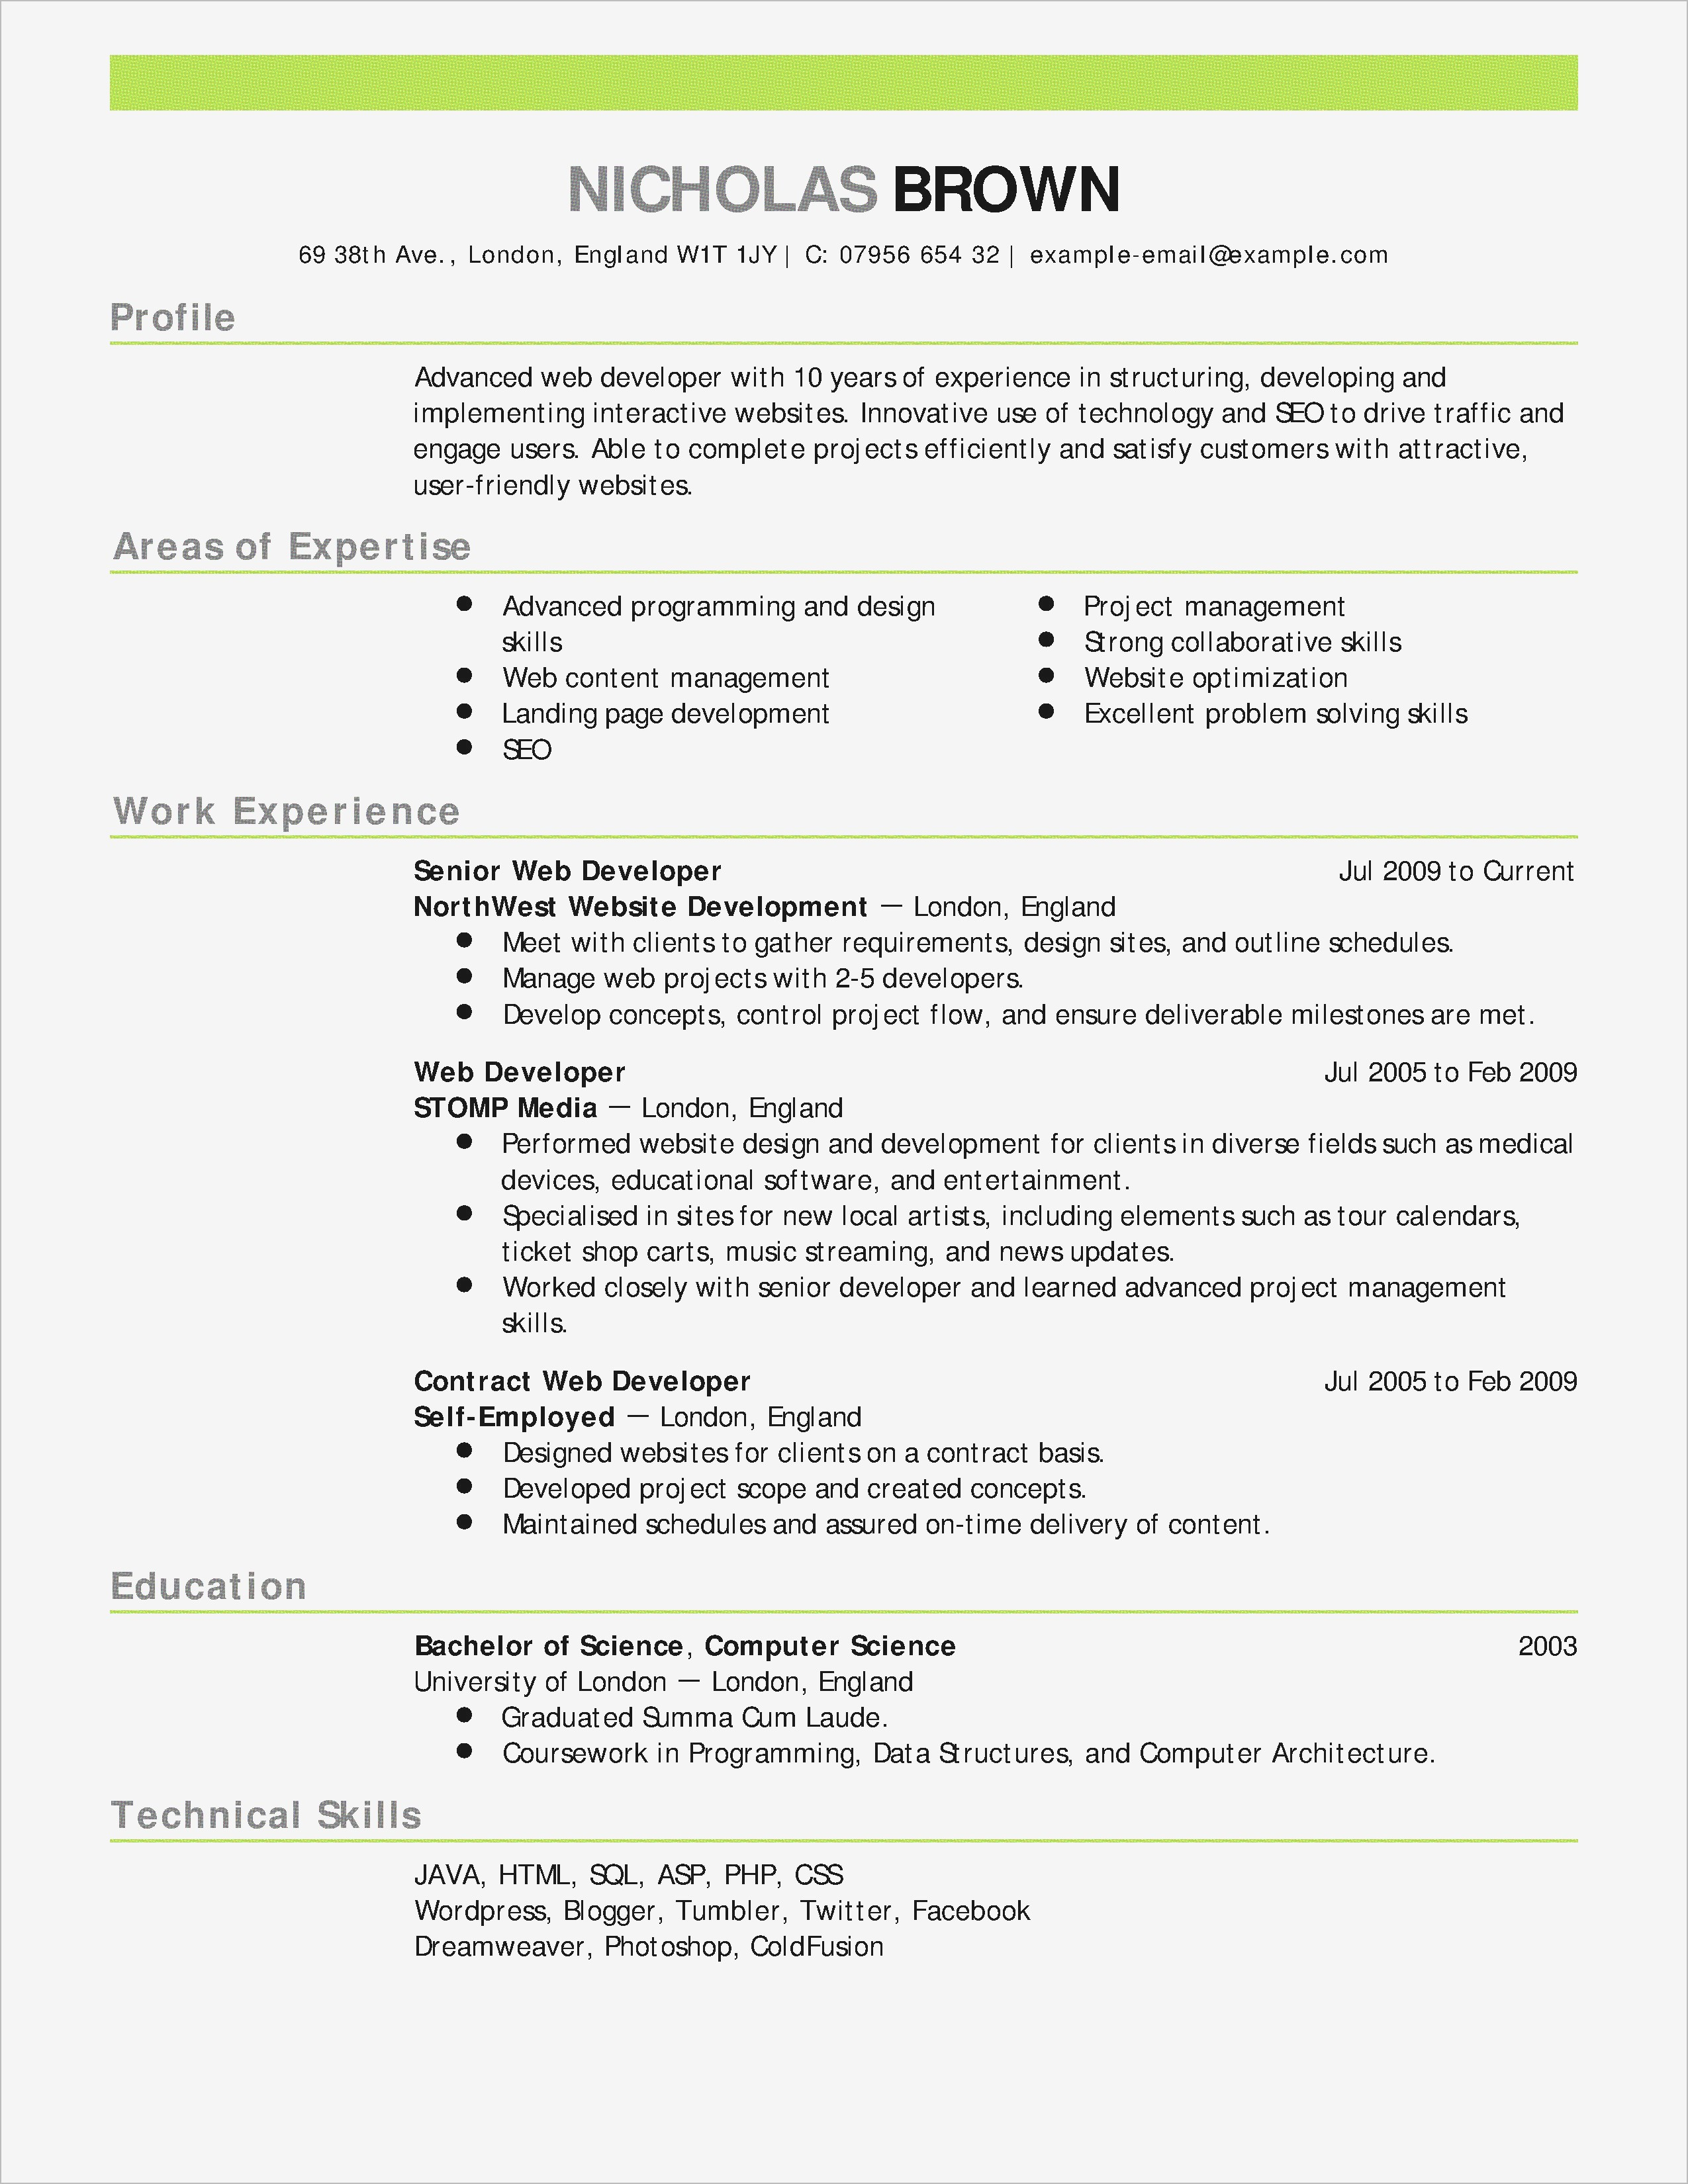 Cover Letter Template Google Docs - Luxury Cover Letter Template Google Docs